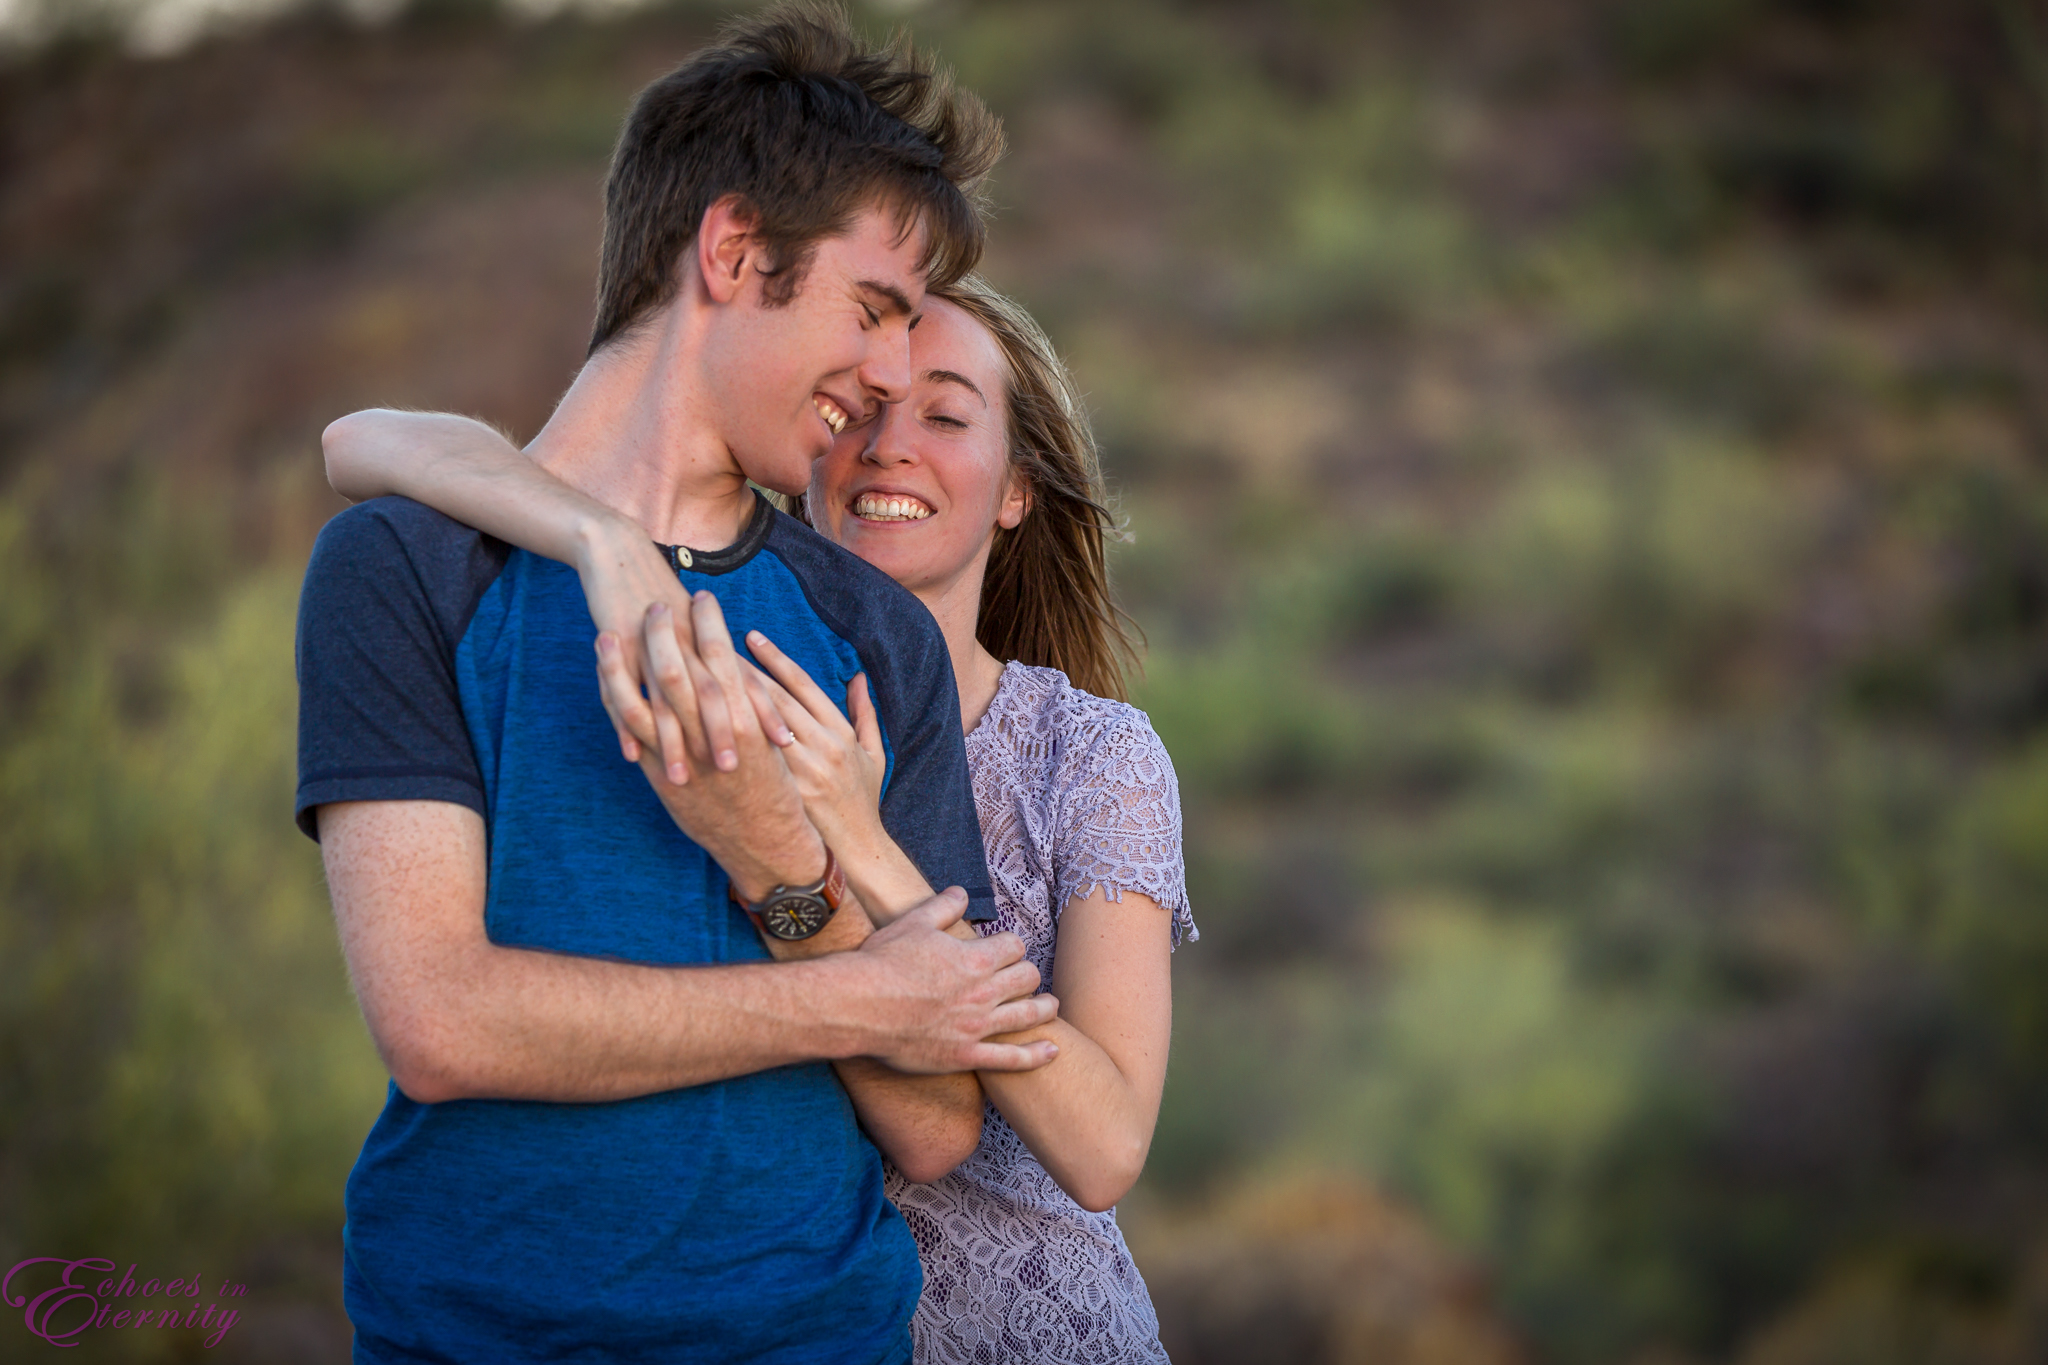 Jeremiah and Hannah Tucson Wedding and Engagement Photographer Sanctuary Cove 04.jpg